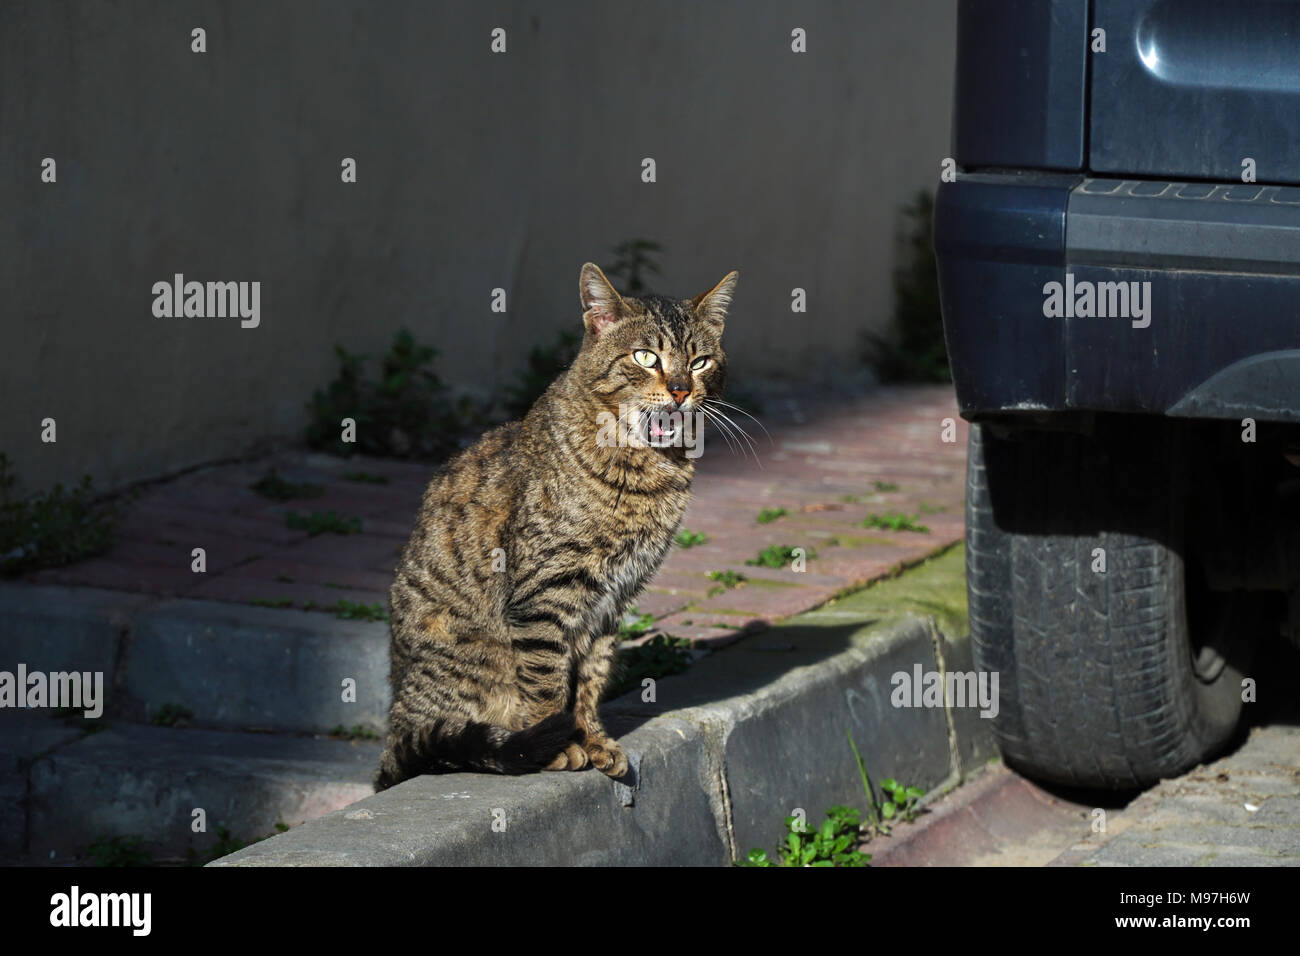 Tabby cat is yawning at street near a car. It is looks like amazed. Stock Photo